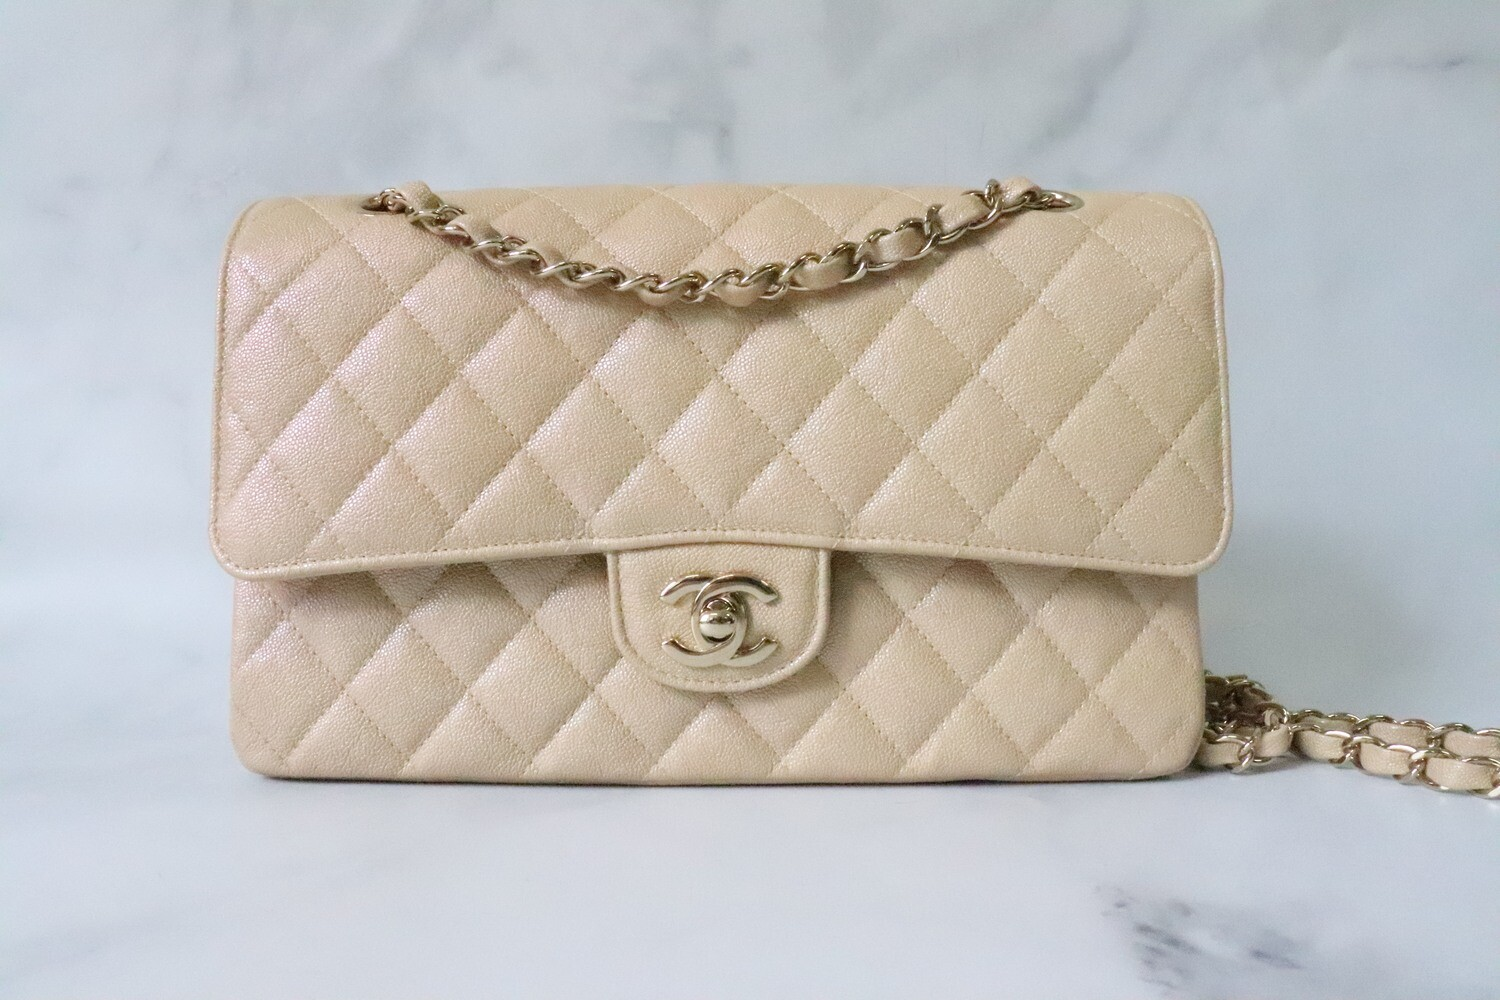 Chanel Classic Medium Double Flap, 19S Beige Claire Caviar Leather, Gold Hardware, Preowned in Box